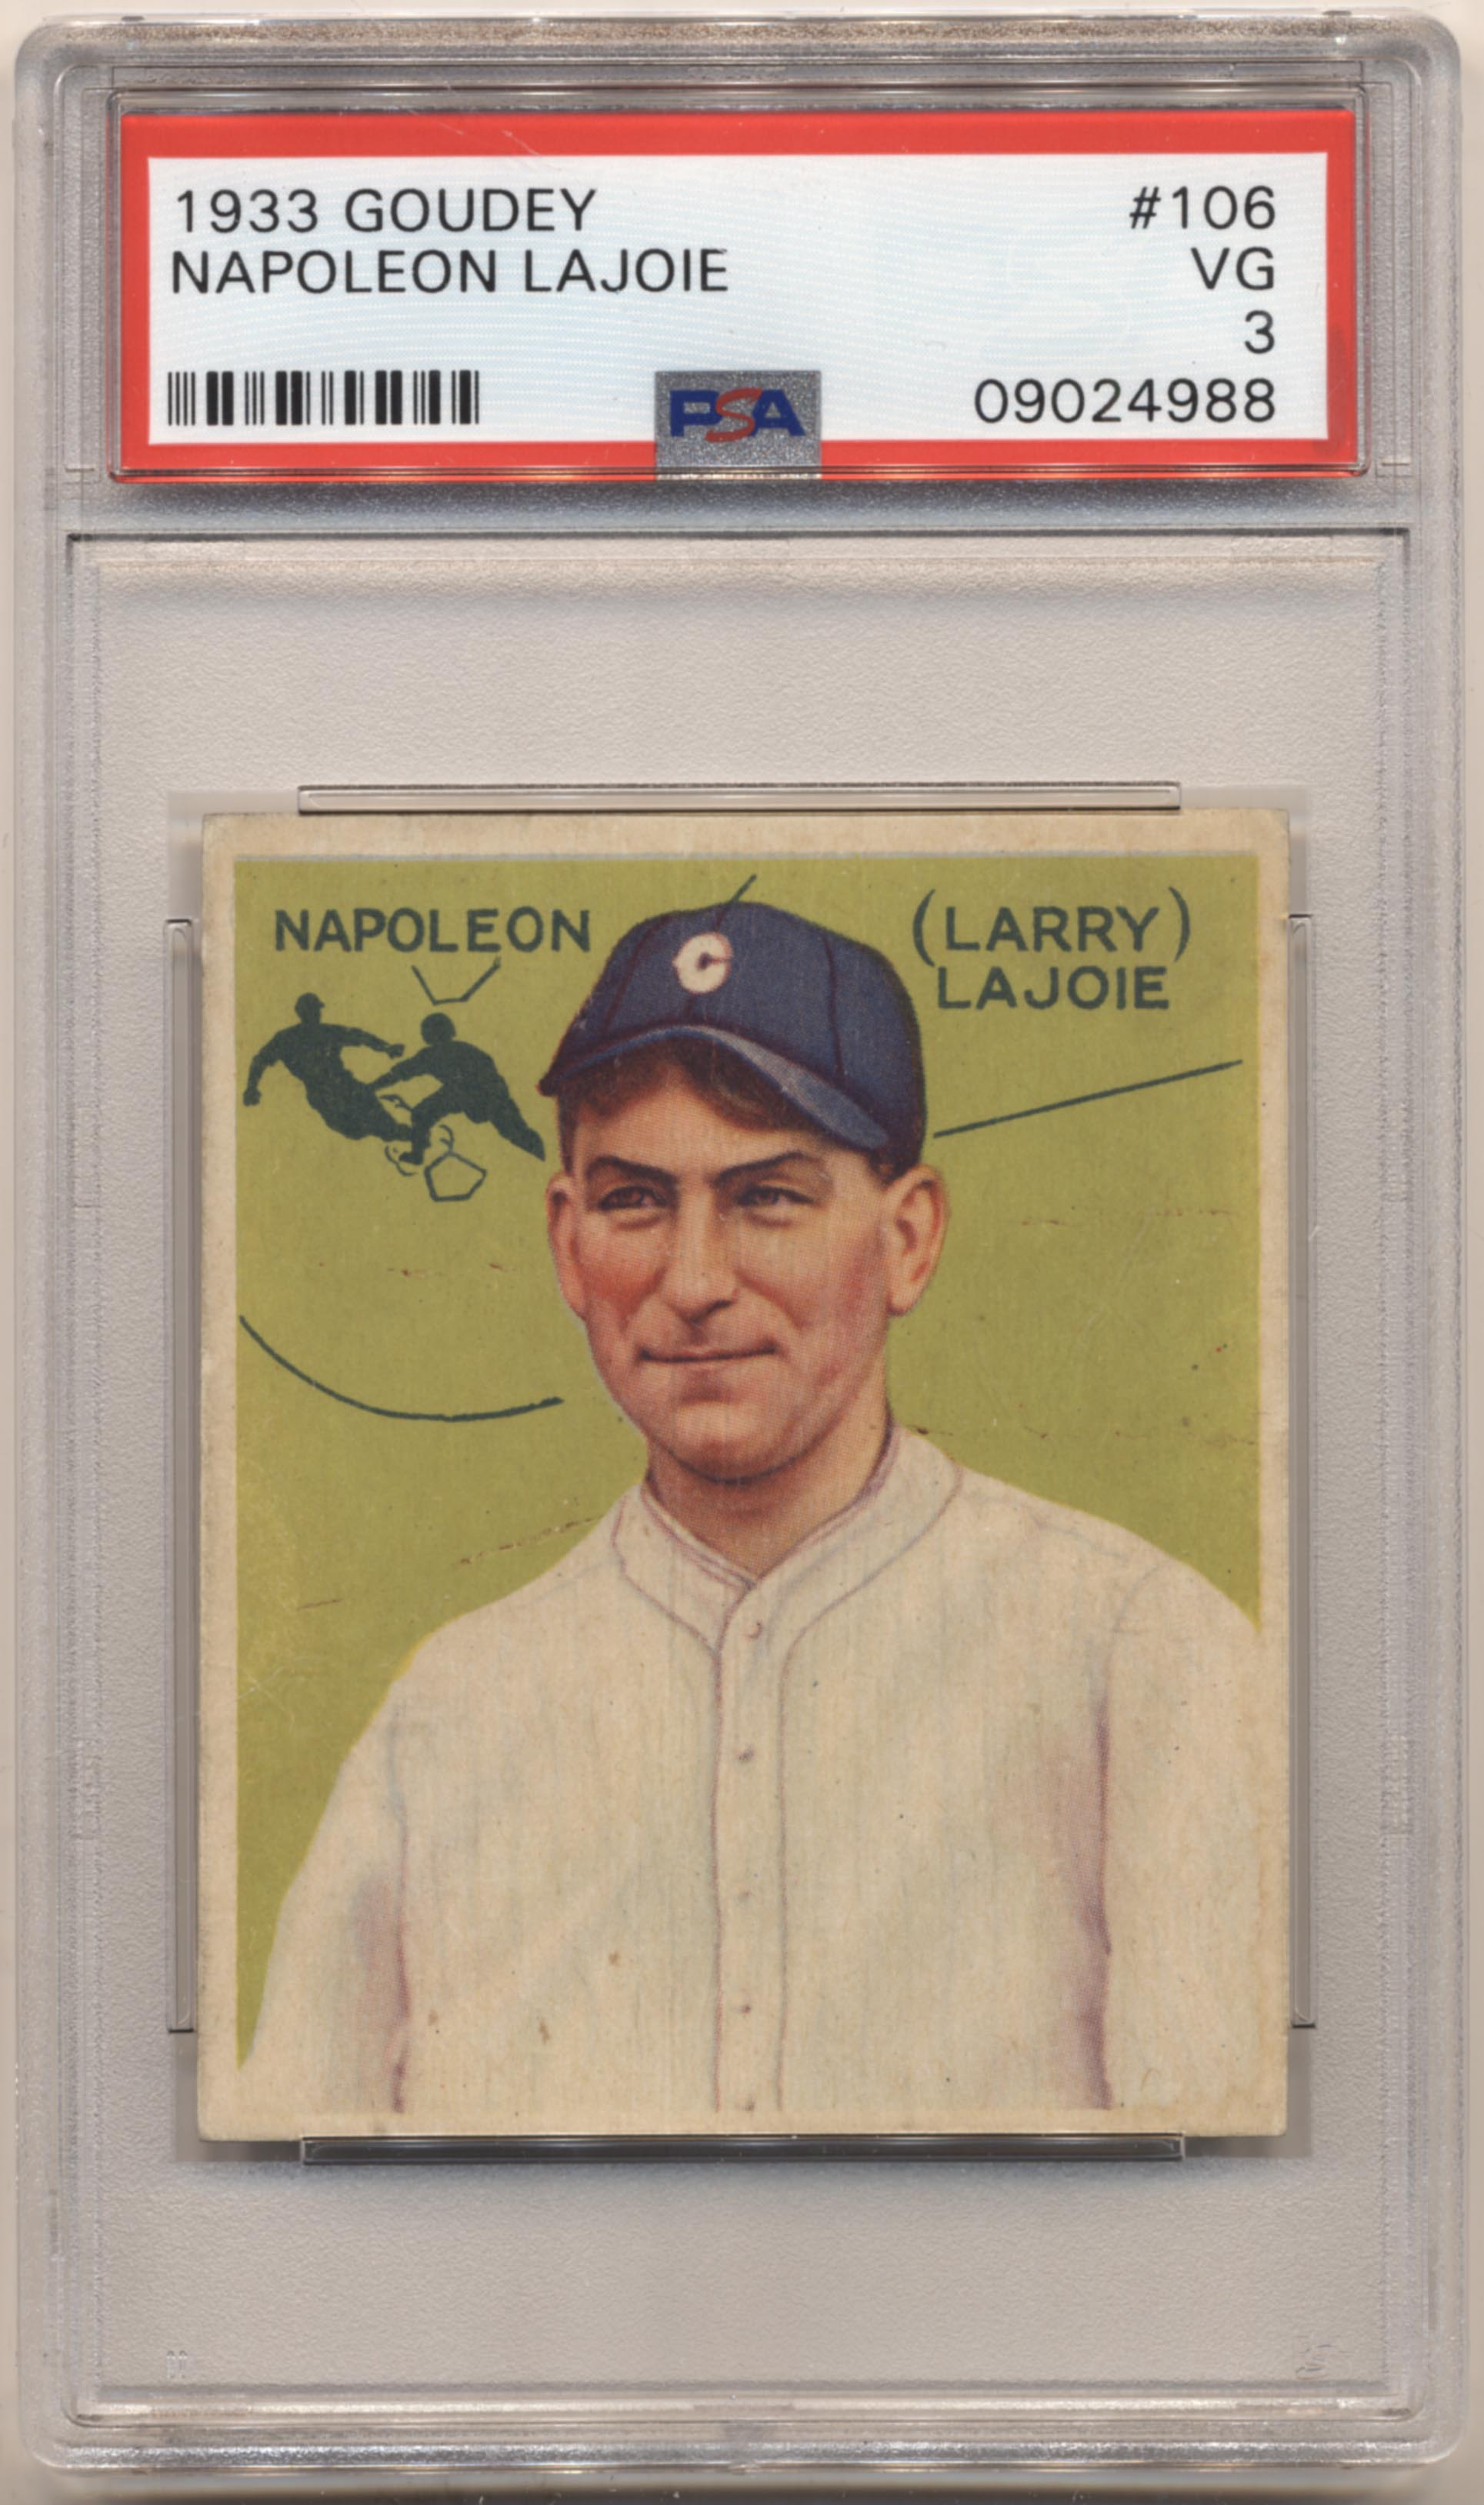 Clean Sweep Auctions Item 606463 Lot 2 1933 Goudey